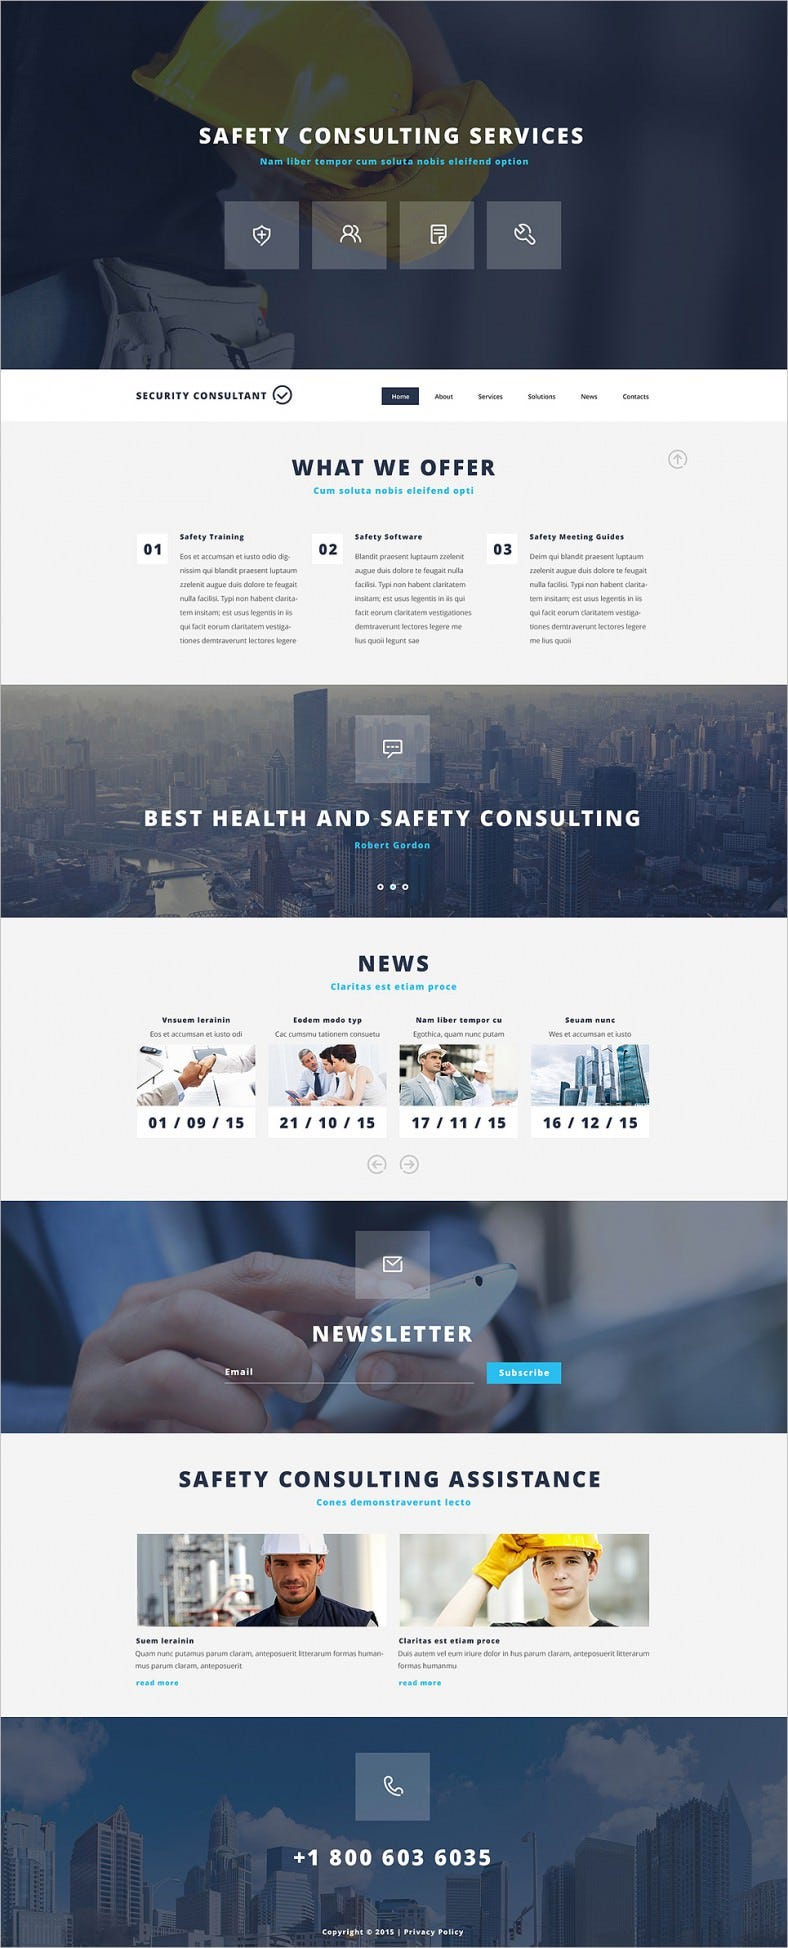 Safety Consulting Services Website Template